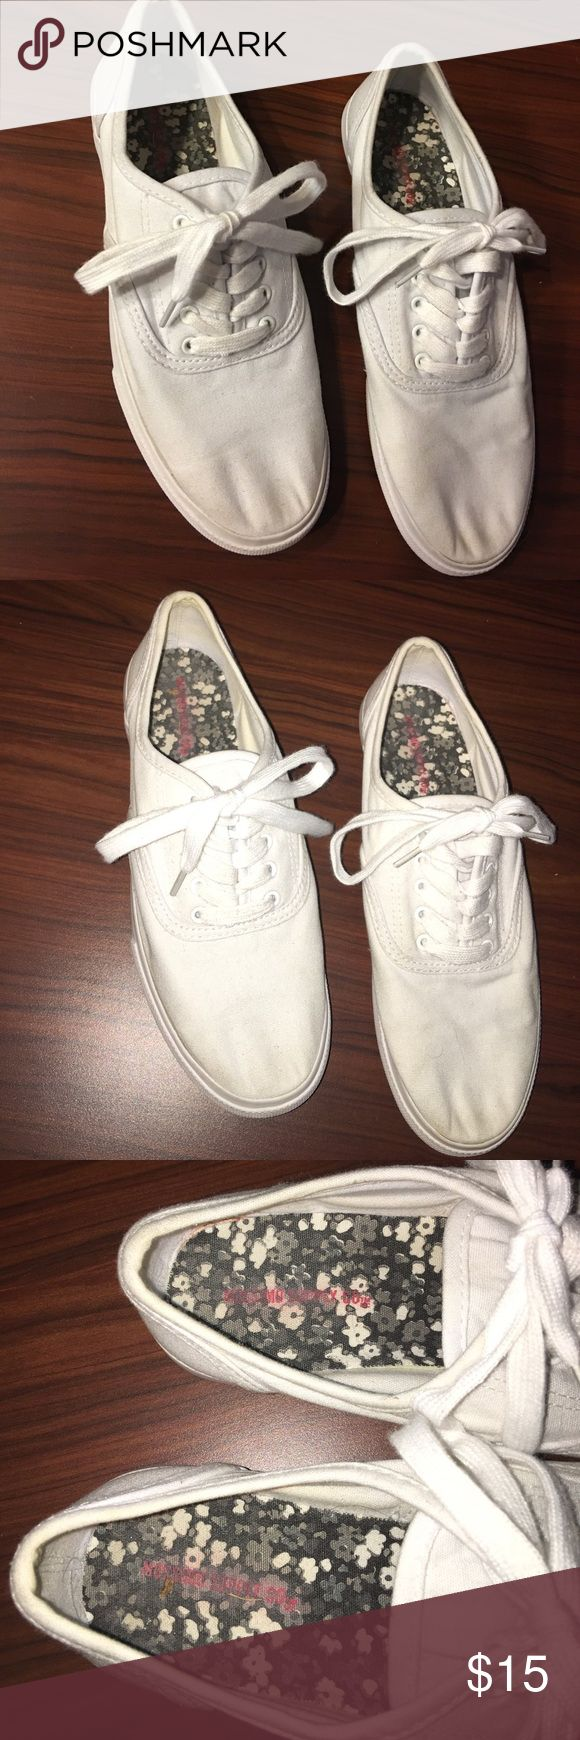 Women's Lunea Canvas Sneakers Mossimo Supply Co Mossimo supply co white sneakers. In great condition. Only worn once Mossimo Supply Co. Shoes Sneakers